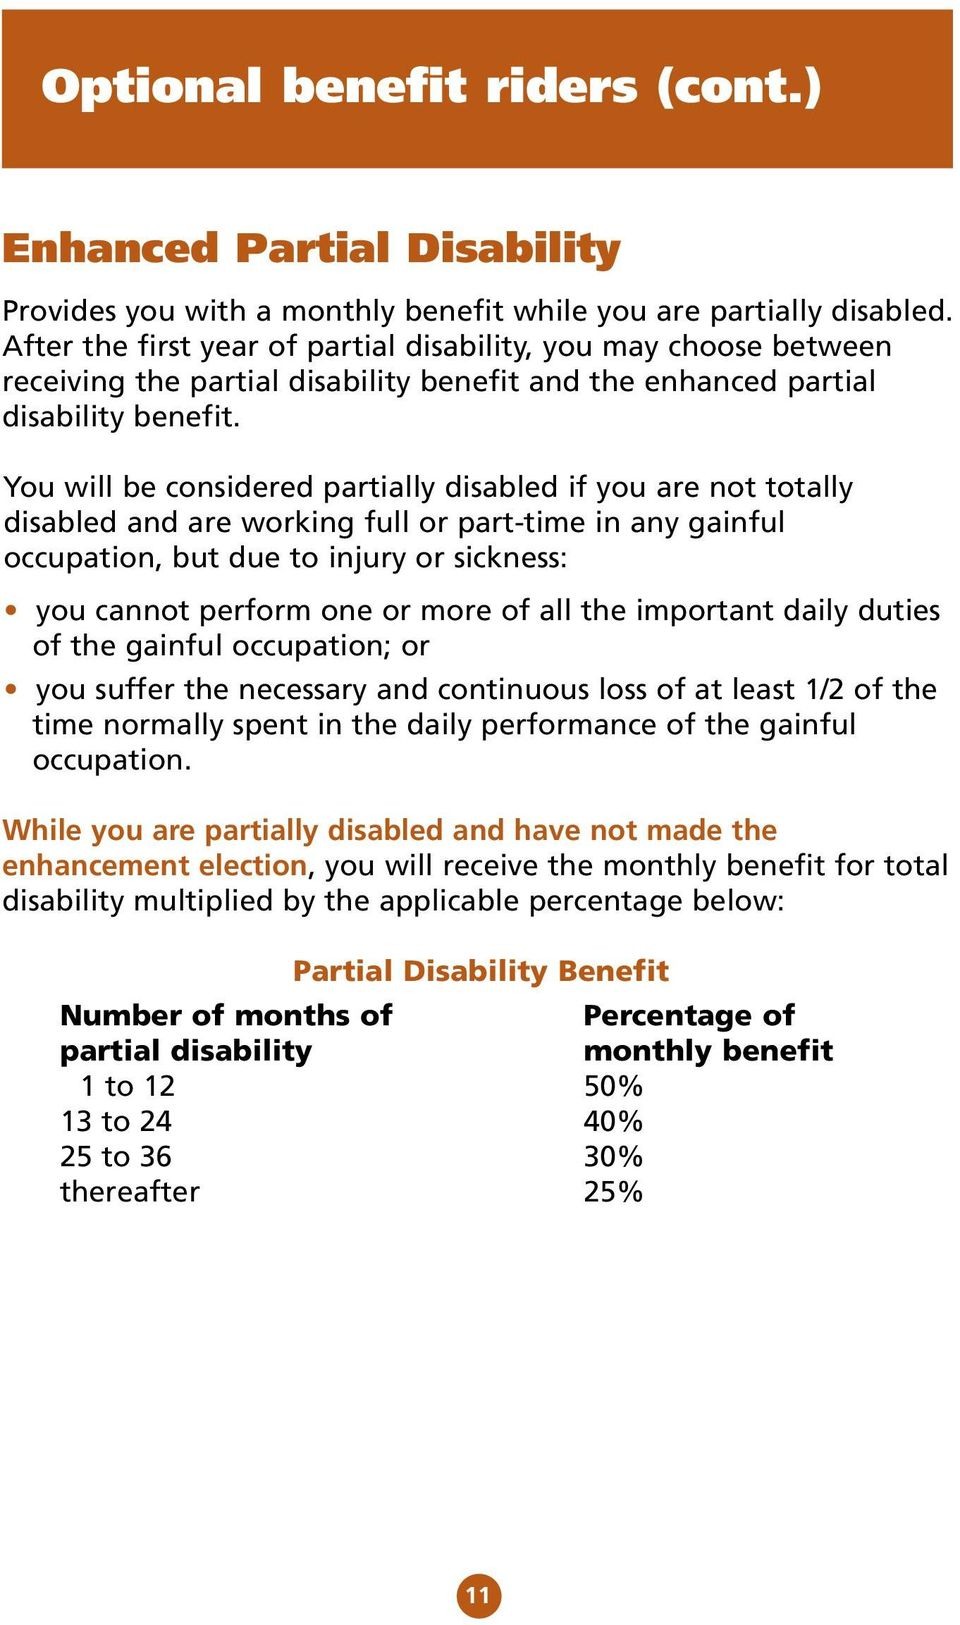 You will be considered partially disabled if you are not totally disabled and are working full or part-time in any gainful occupation, but due to injury or sickness: you cannot perform one or more of